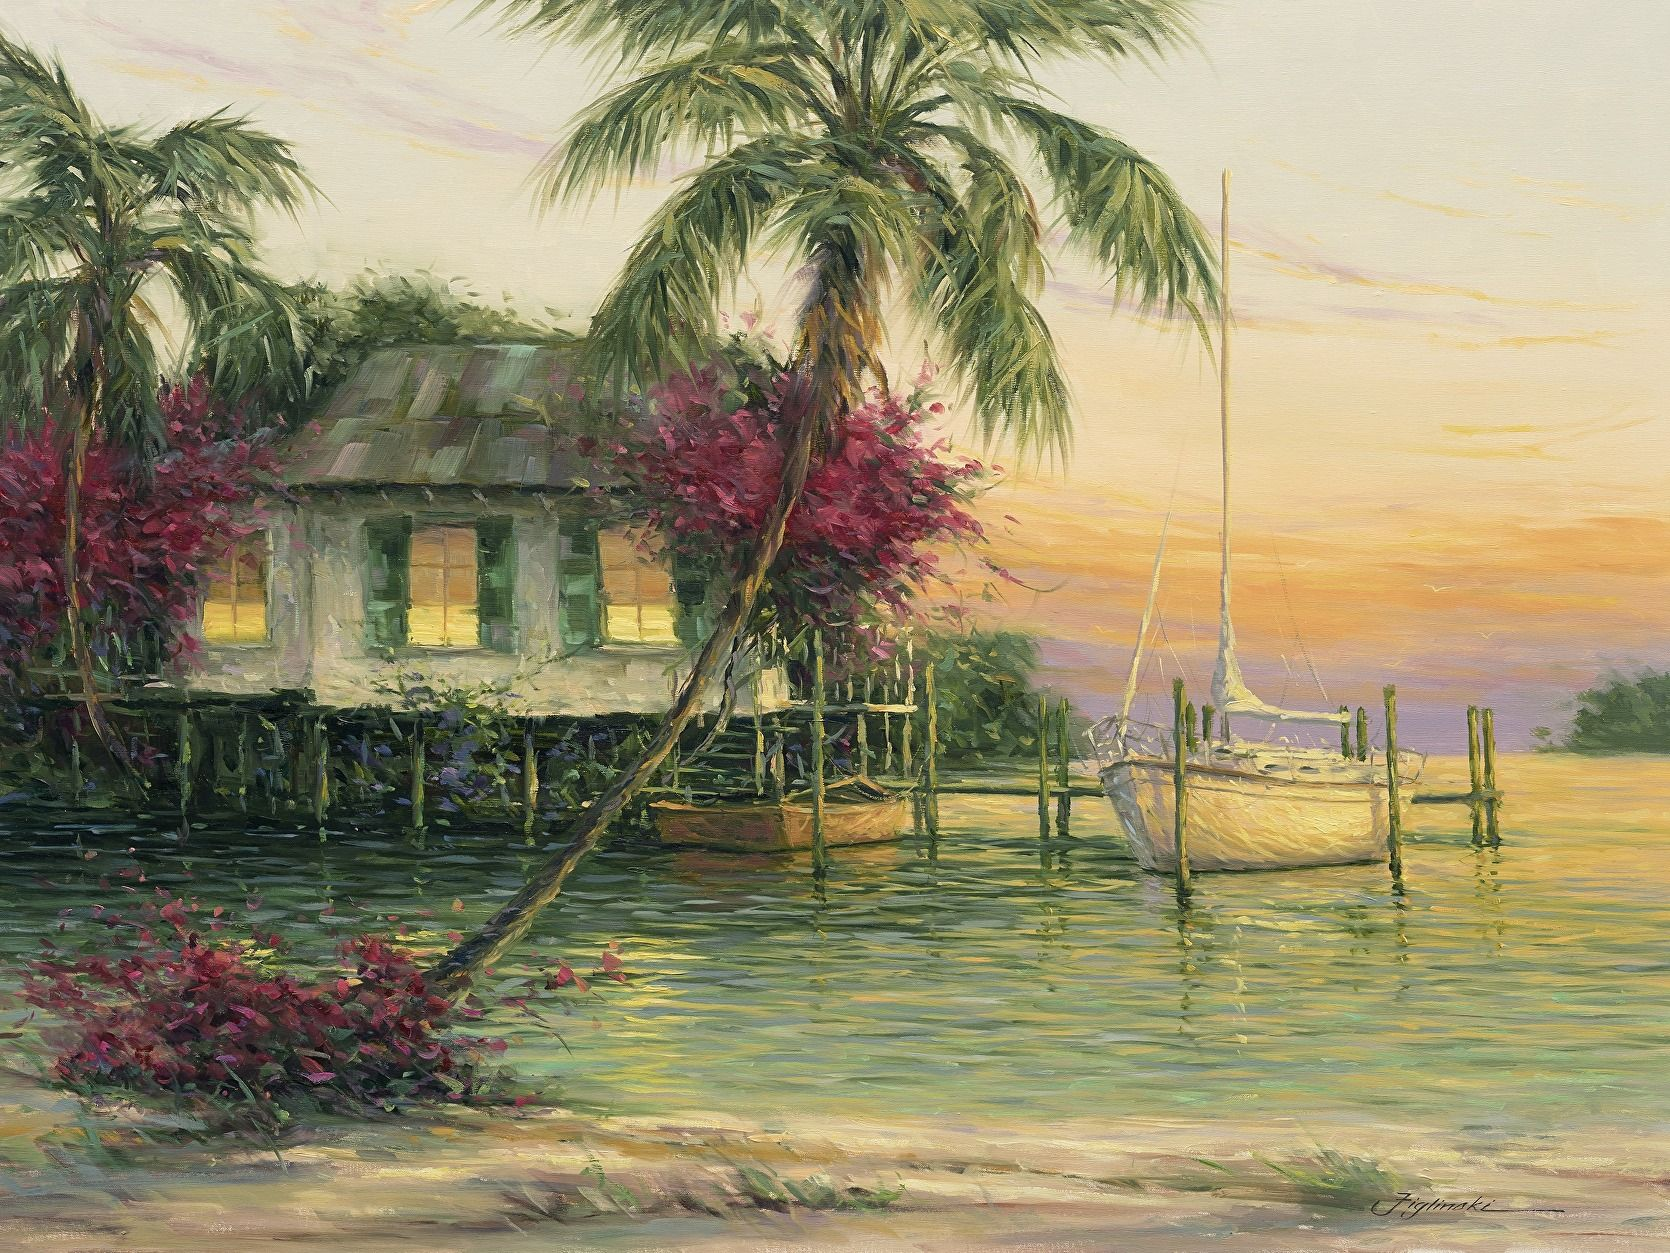 Tangerine Sun by Martin Figlinski, Oil, 30 x 40.#cottage #coastalcottage #cottagedecor #floridadecor #beachcottage #oilpainting #dailypaintworks  #interiordesign #decor #coastalliving #bahamas  #cottageart #Cottagestyle #beachcottage #figlinski  #cottagestyledecor #cottagecharm #cottagelife #cottageart #cottagehome #homedecor #oilpainting #artcollector  #coastalcottage  #coastaldecor #coastalliving #gifts #tommybahama #tommybahamahome #figlinski #tropicalart  #keywest